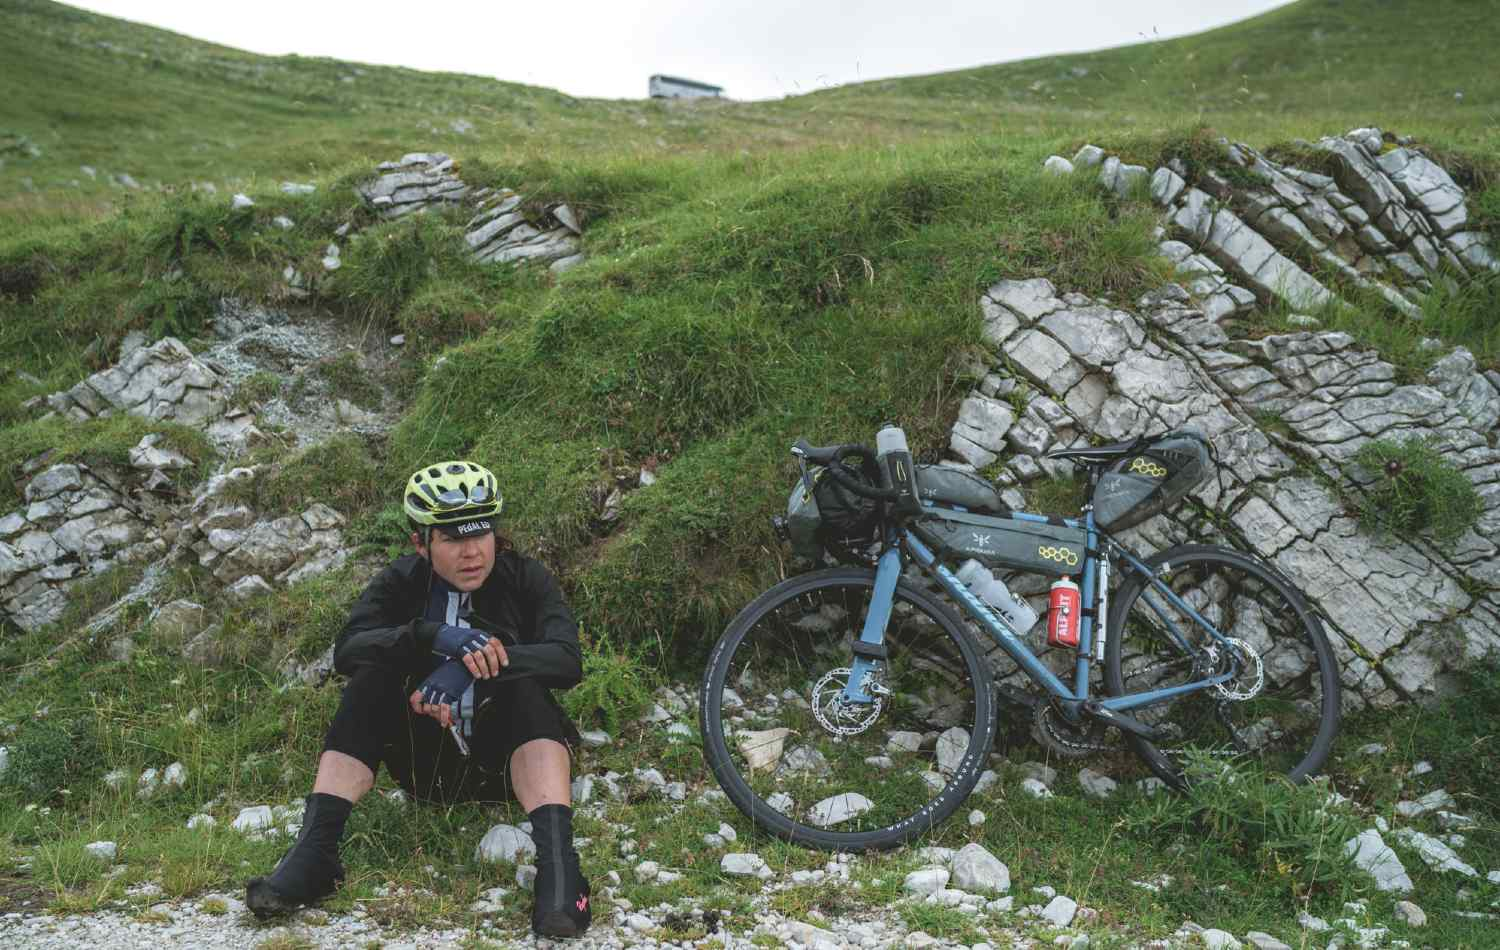 A cyclist pauses by the side of the road to take stock